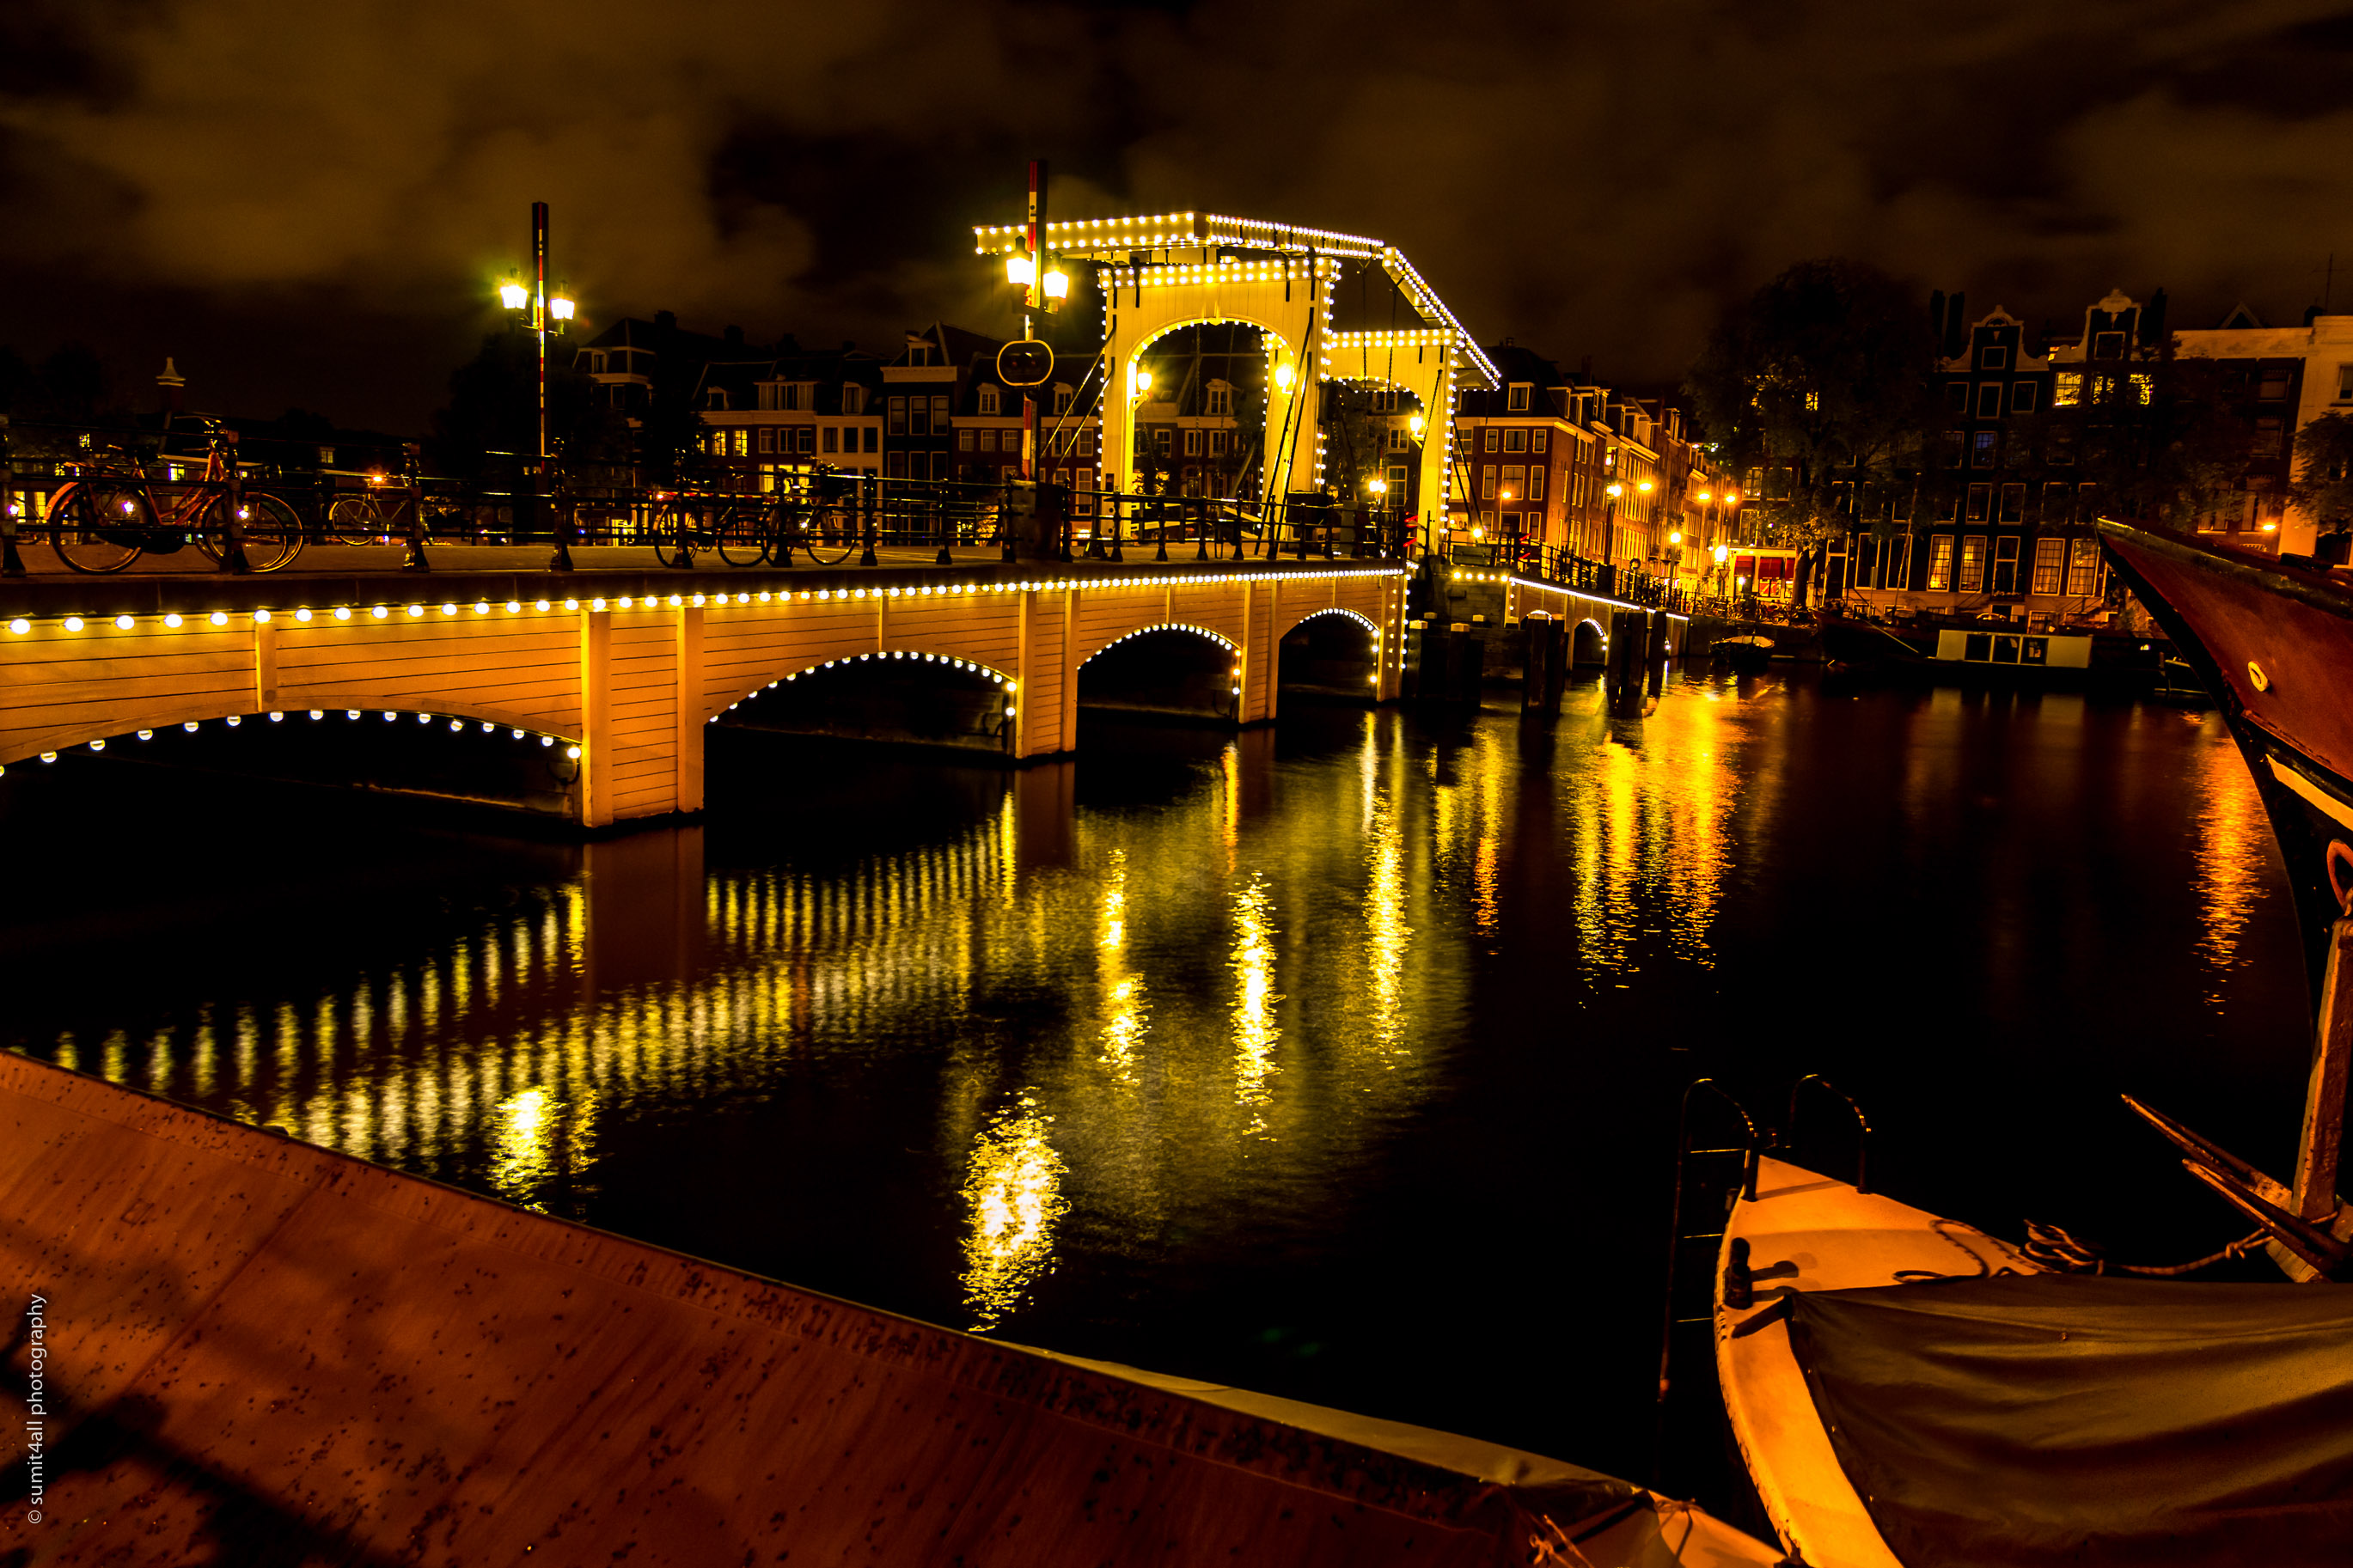 The Magere Brug by the Amstel River